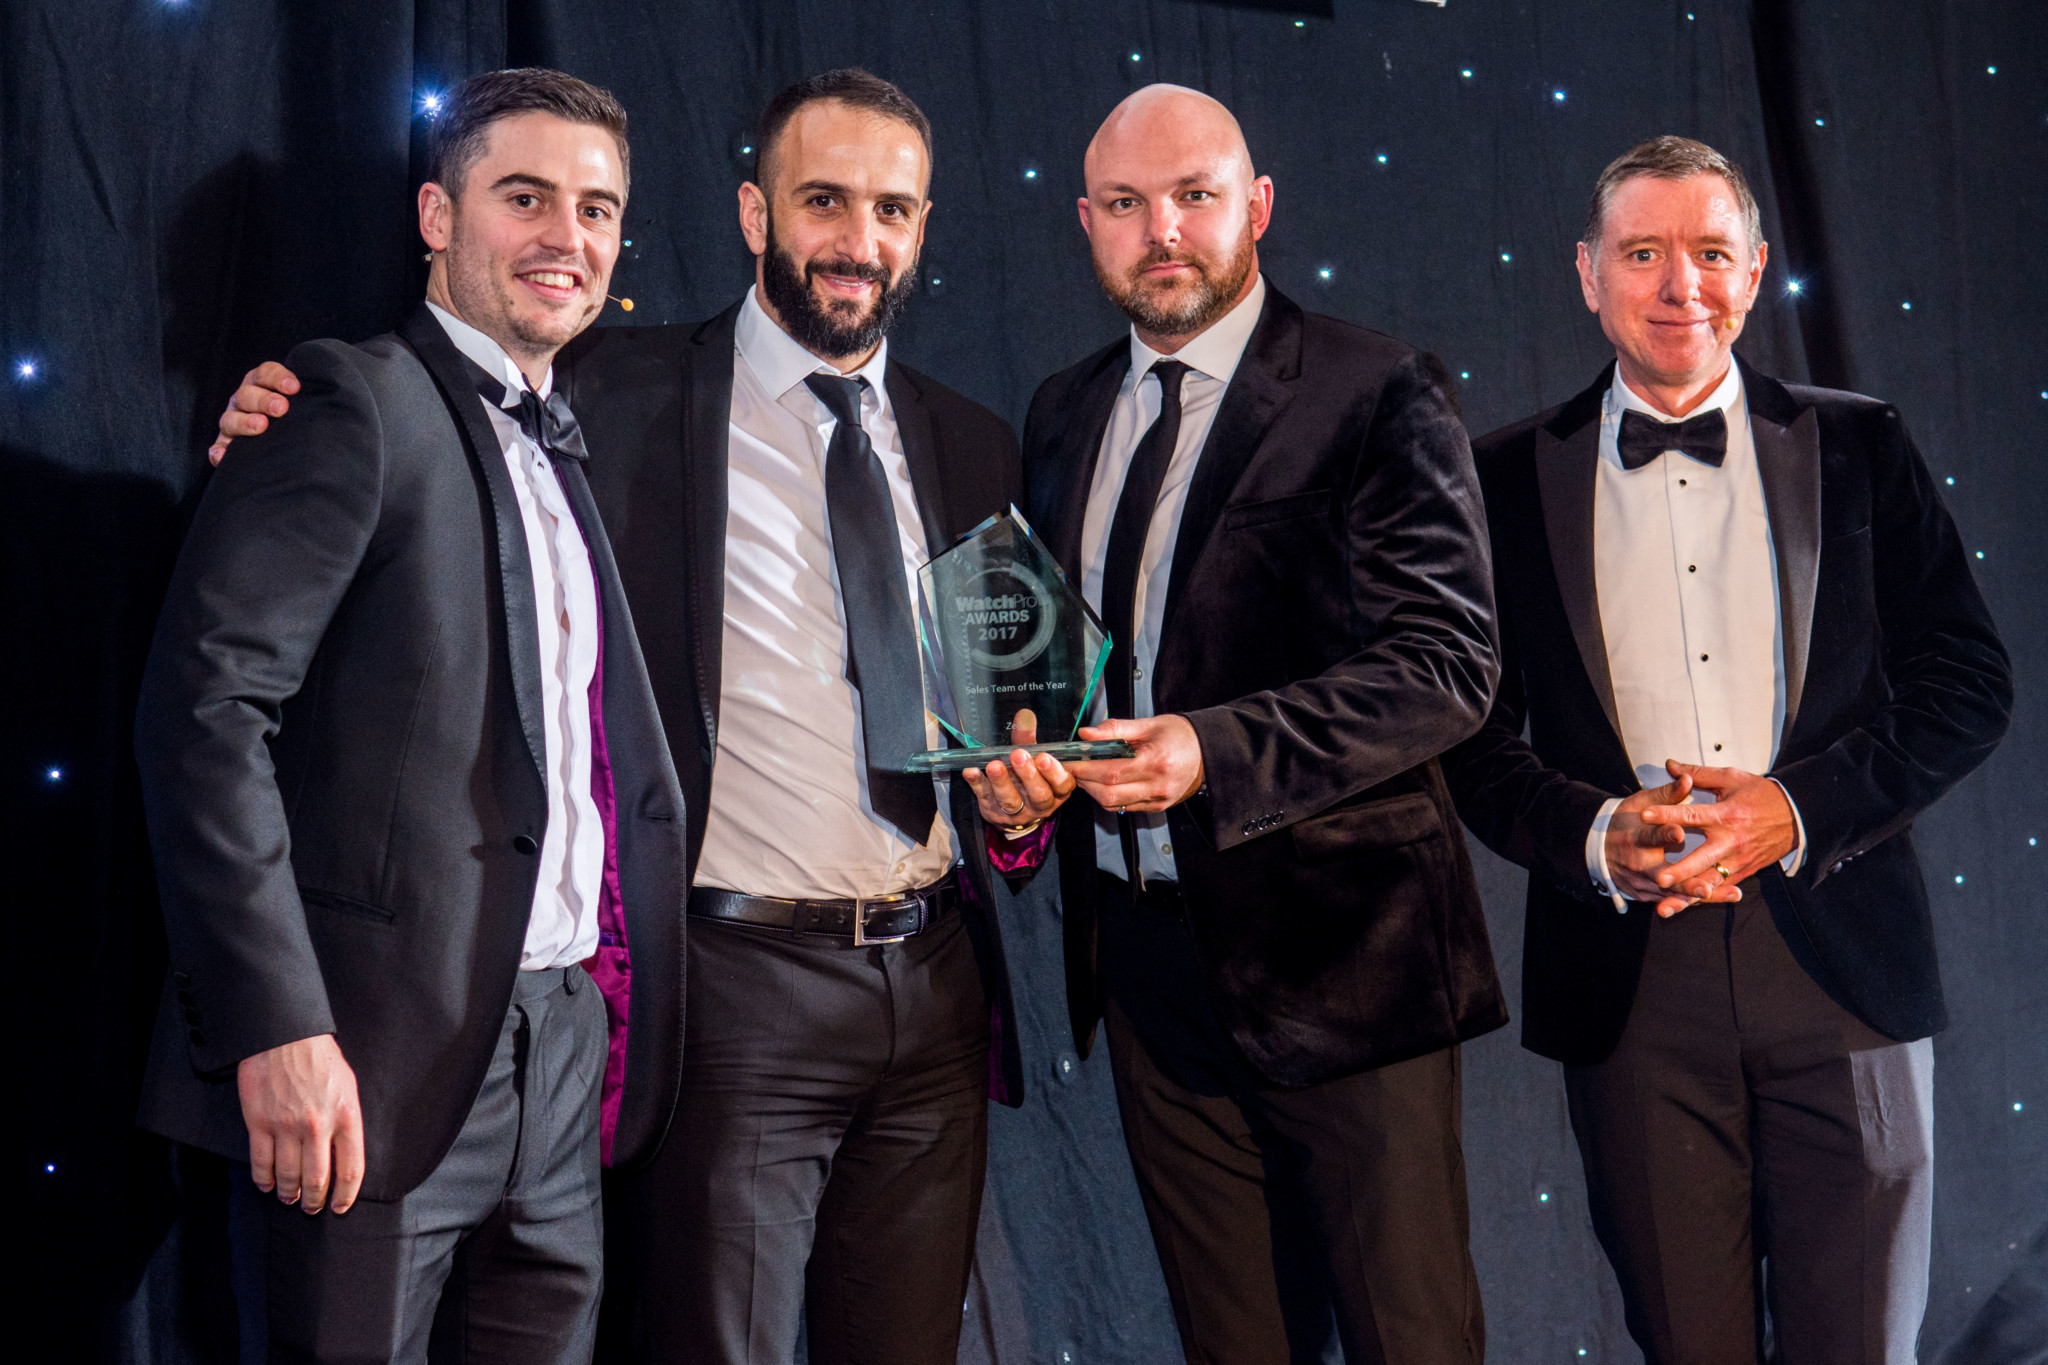 WatchPro publisher Daniel Malins presents the award to Zeon's Javier Guerra, head of sales; and Simon Gilham, managing director.